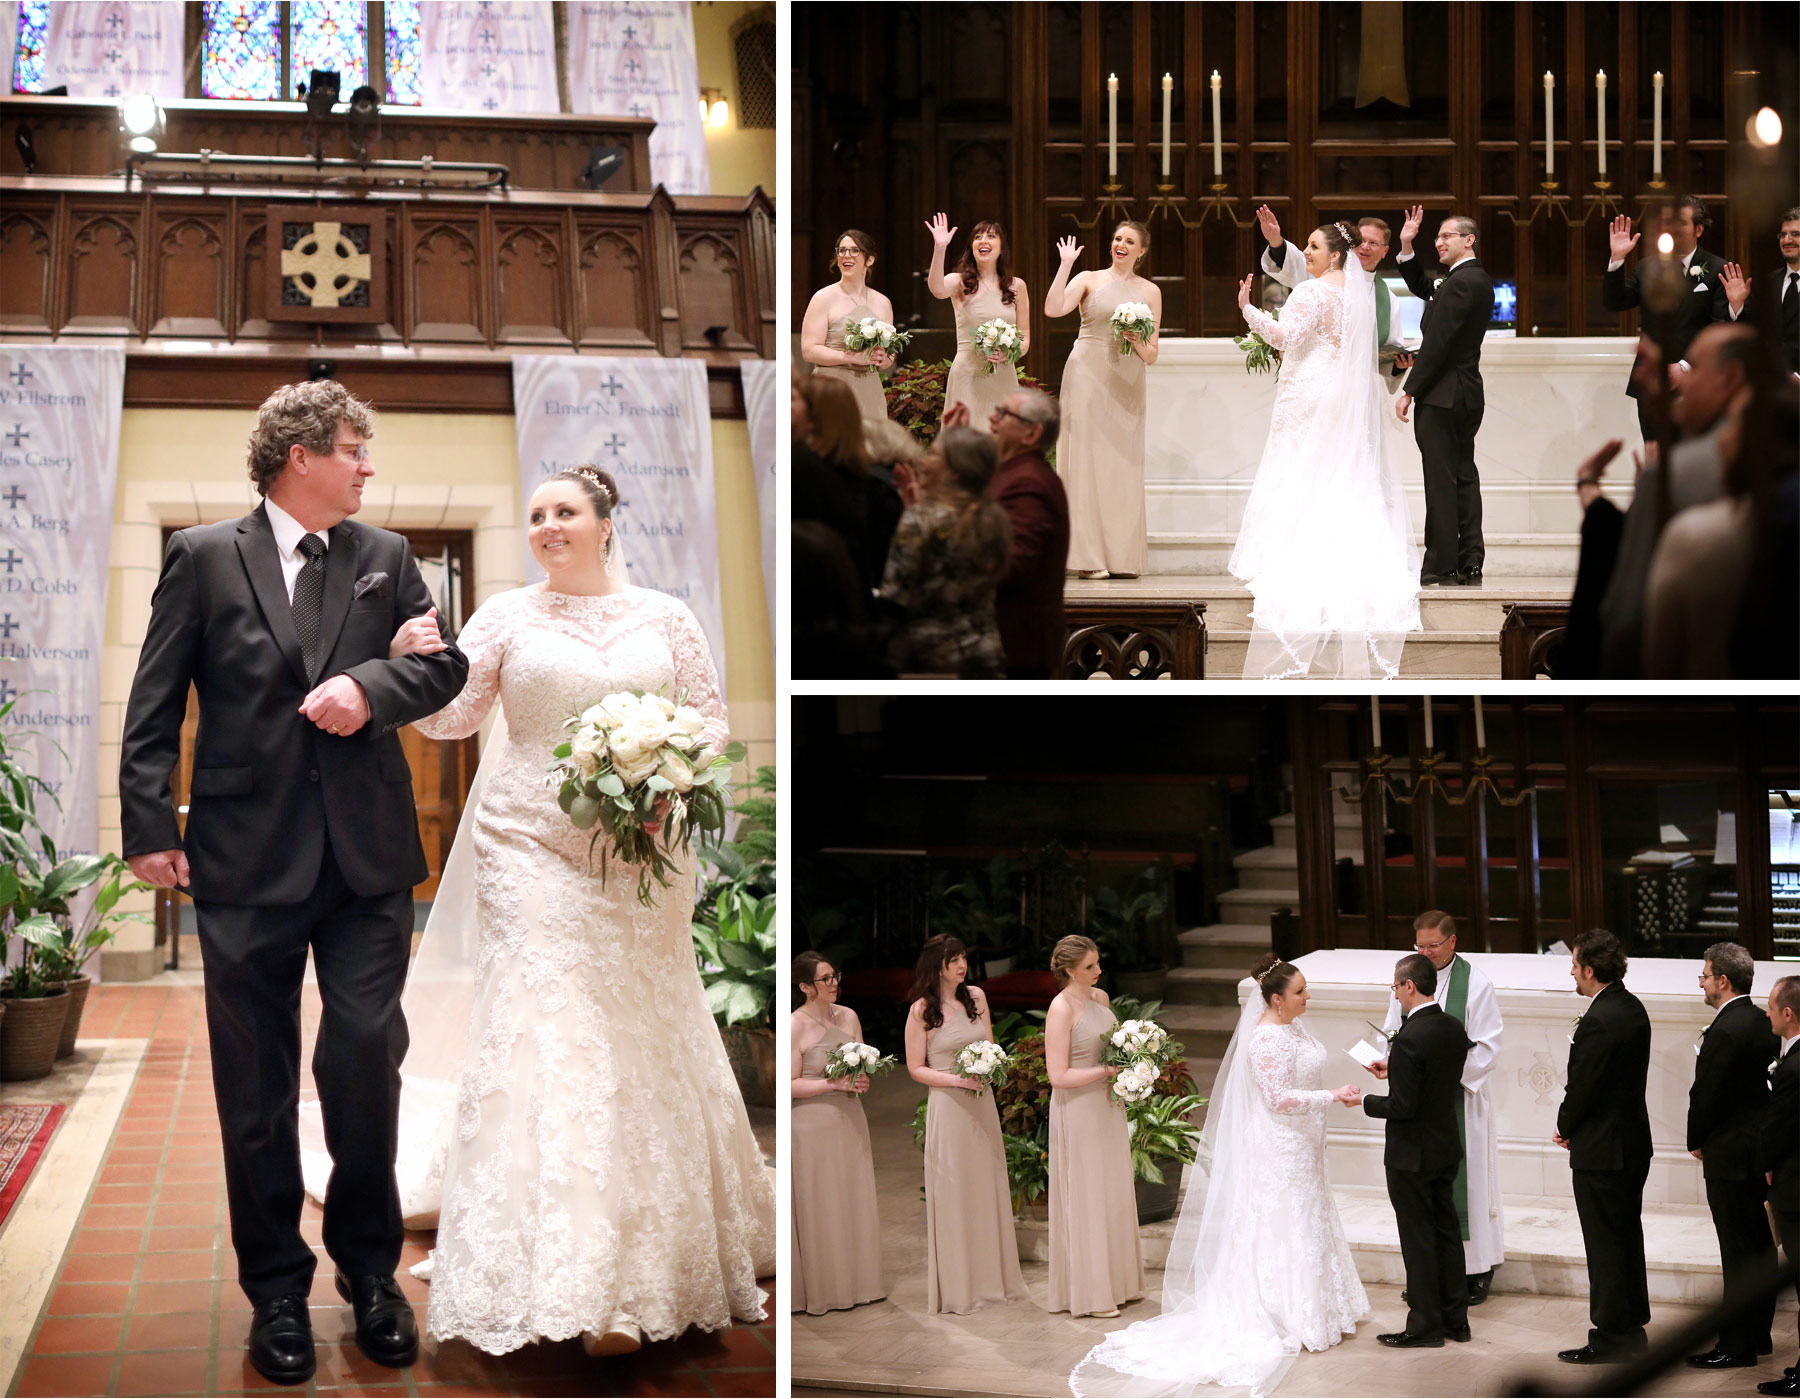 09-Minneapolis-Minnesota-Wedding-Photography-by-Vick-Photography-Ceremony-Central-Lutheran-church-Anja-and-Waseem.jpg